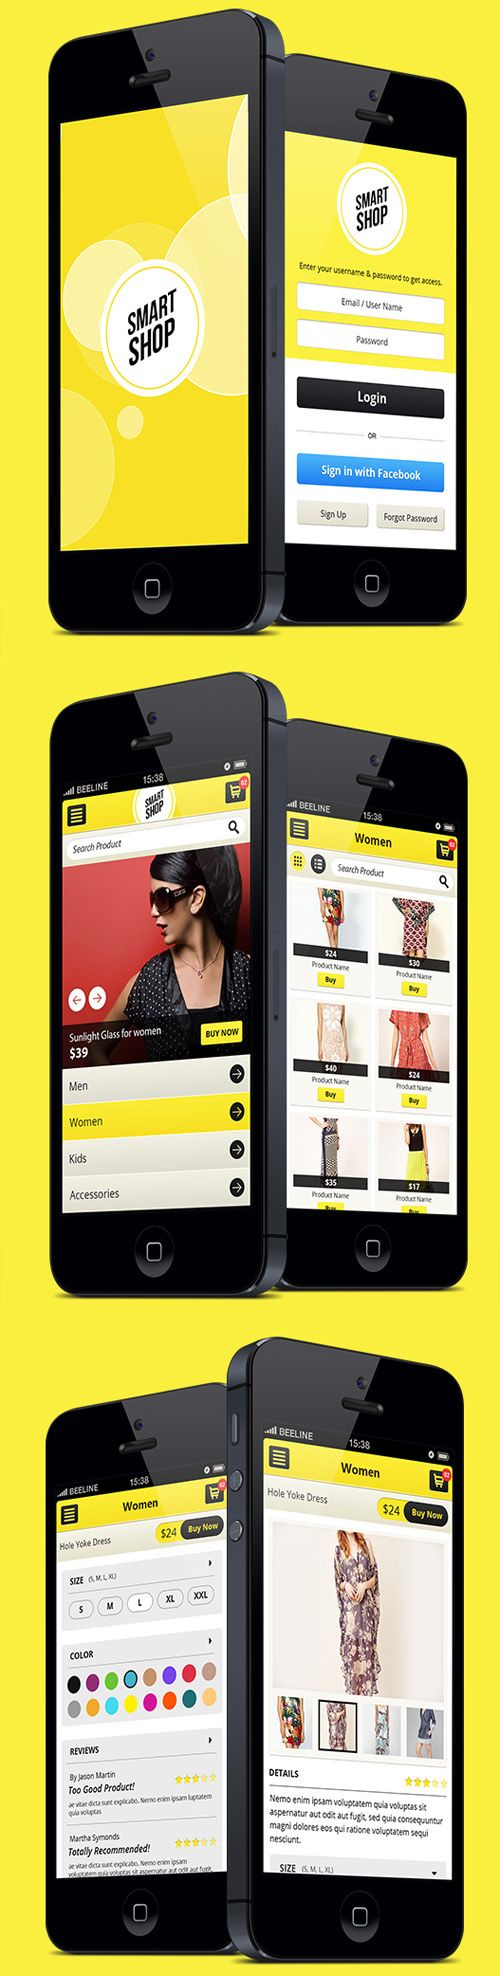 Smart Shop Mobile E-Commerce Website or App User Interface